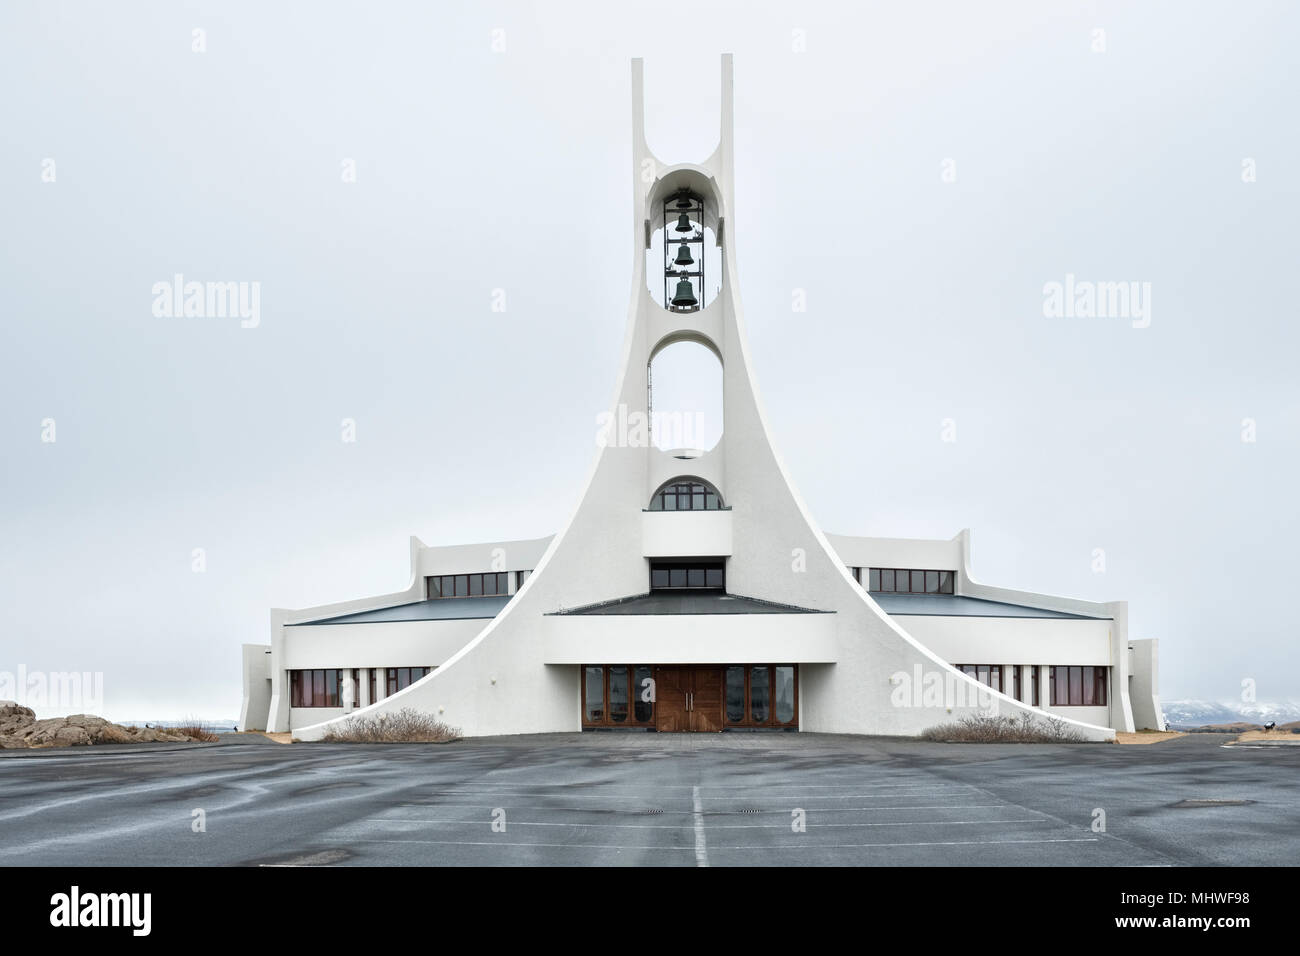 Stykkishólmur, Iceland, on the Snæfellsnes peninsula. The new church designed by Jón Haraldsson was built in 1990. It is also used as a concert hall - Stock Image